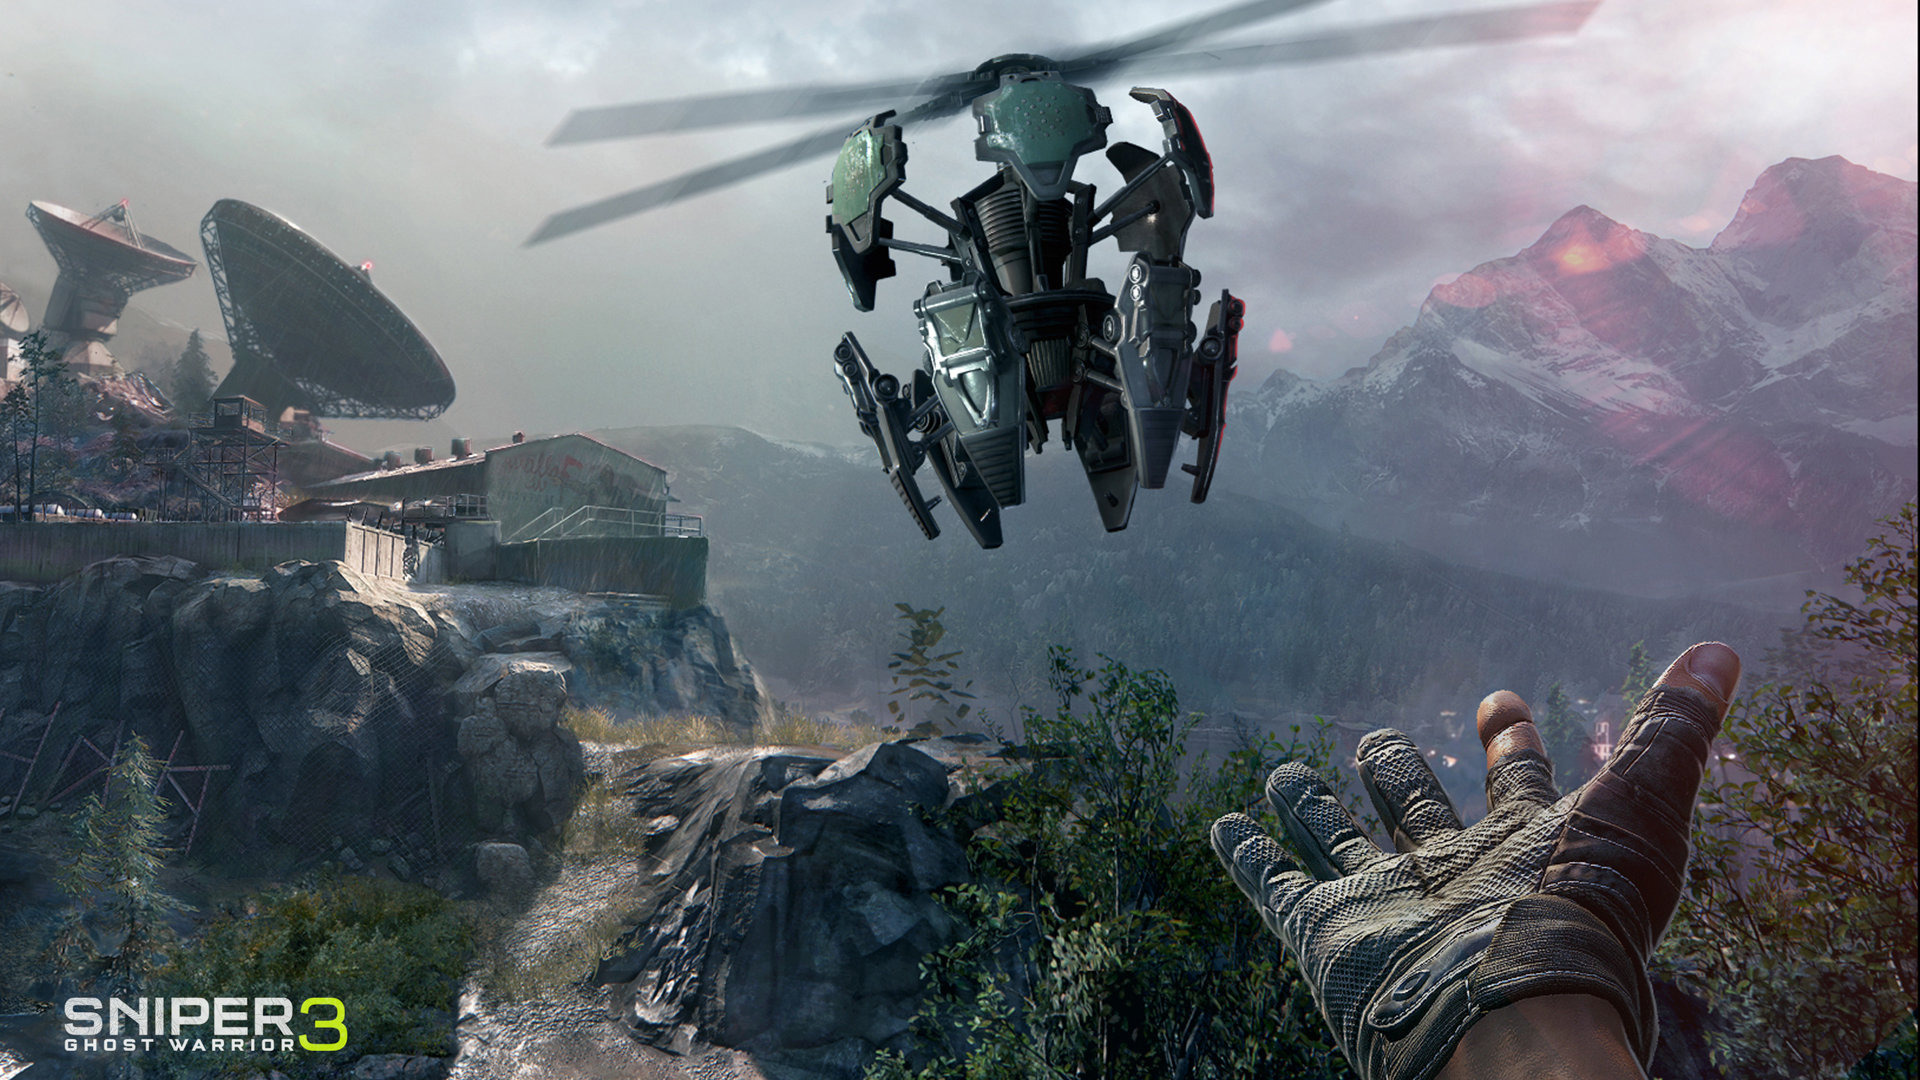 forever a drone with Sniper Ghost Warrior 3 Review Met on Virgin Airlines Richard Branson Announces Revolutionary Aircraft Passenger Device additionally Mary McCormack besides What Every President Drank also Sorrygulbul wordpress in addition Sniper Ghost Warrior 3 Review Met.